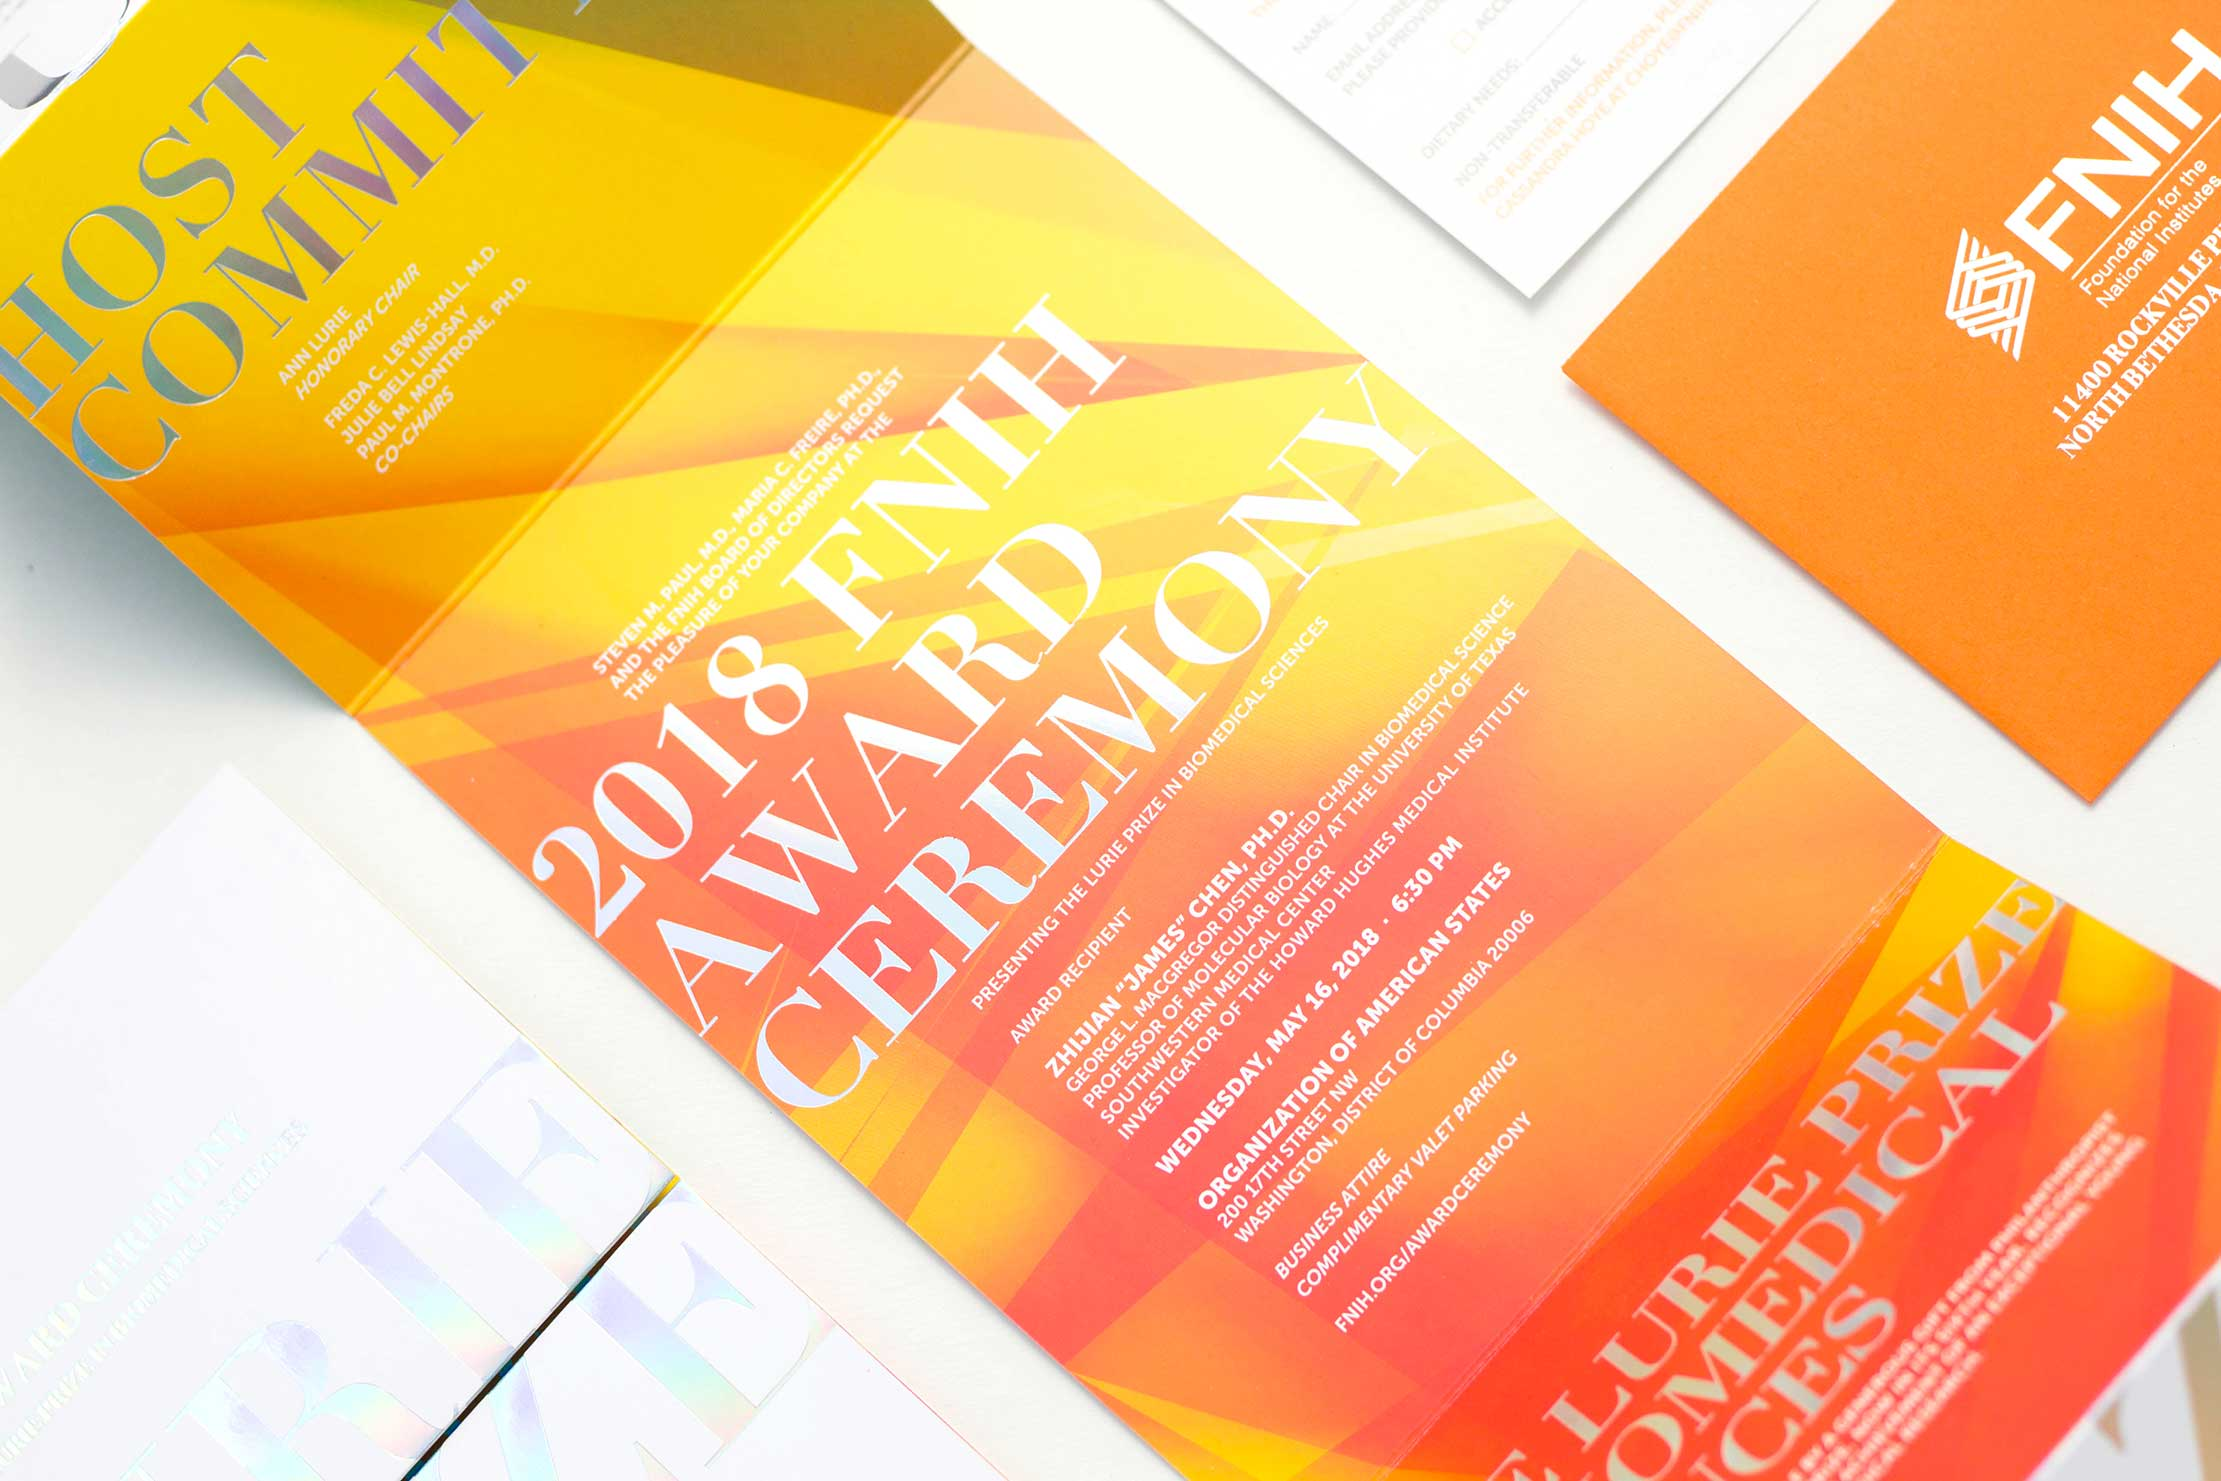 Unique Event Branding—FNIH's 2018 Lurie Prize Award Ceremony